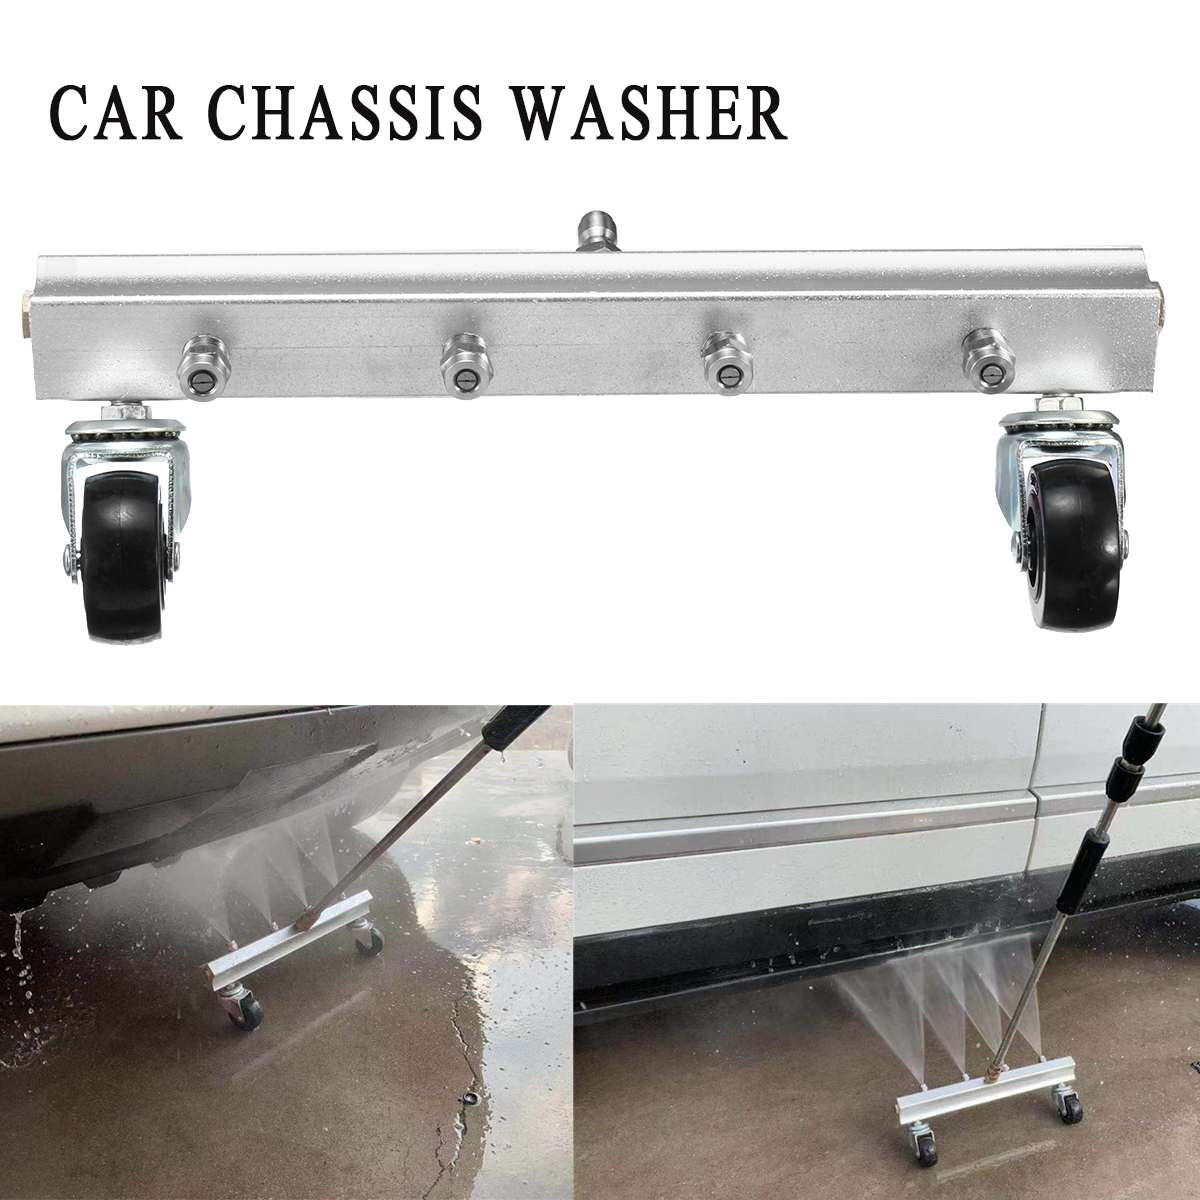 Under Body Car Chassis power pressure Washer